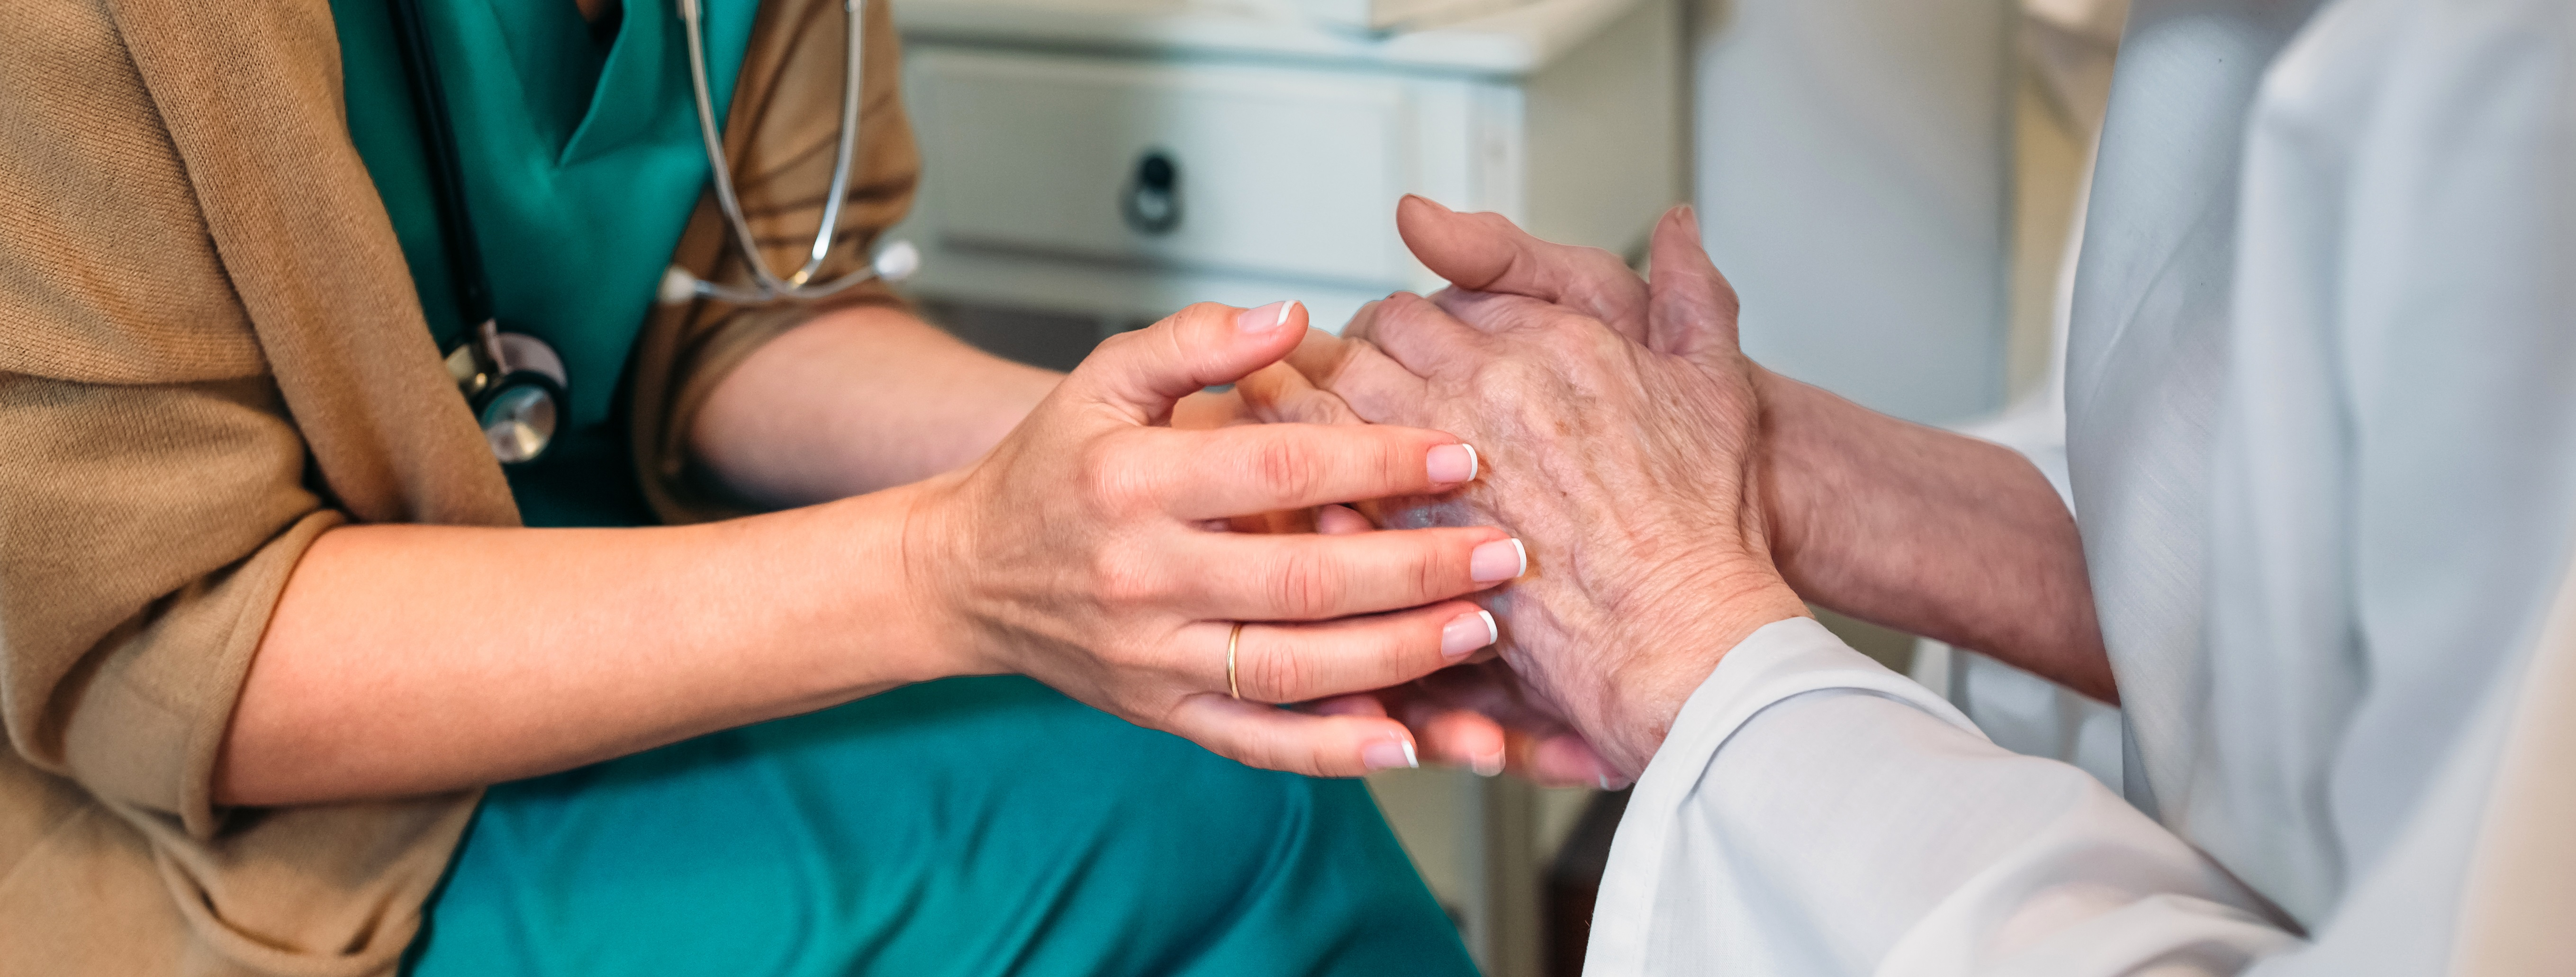 Two pairs of hands intertwine. One pair belongs to someone wearing a stethoscope and scrubs. The other belongs to someone in a white gown.